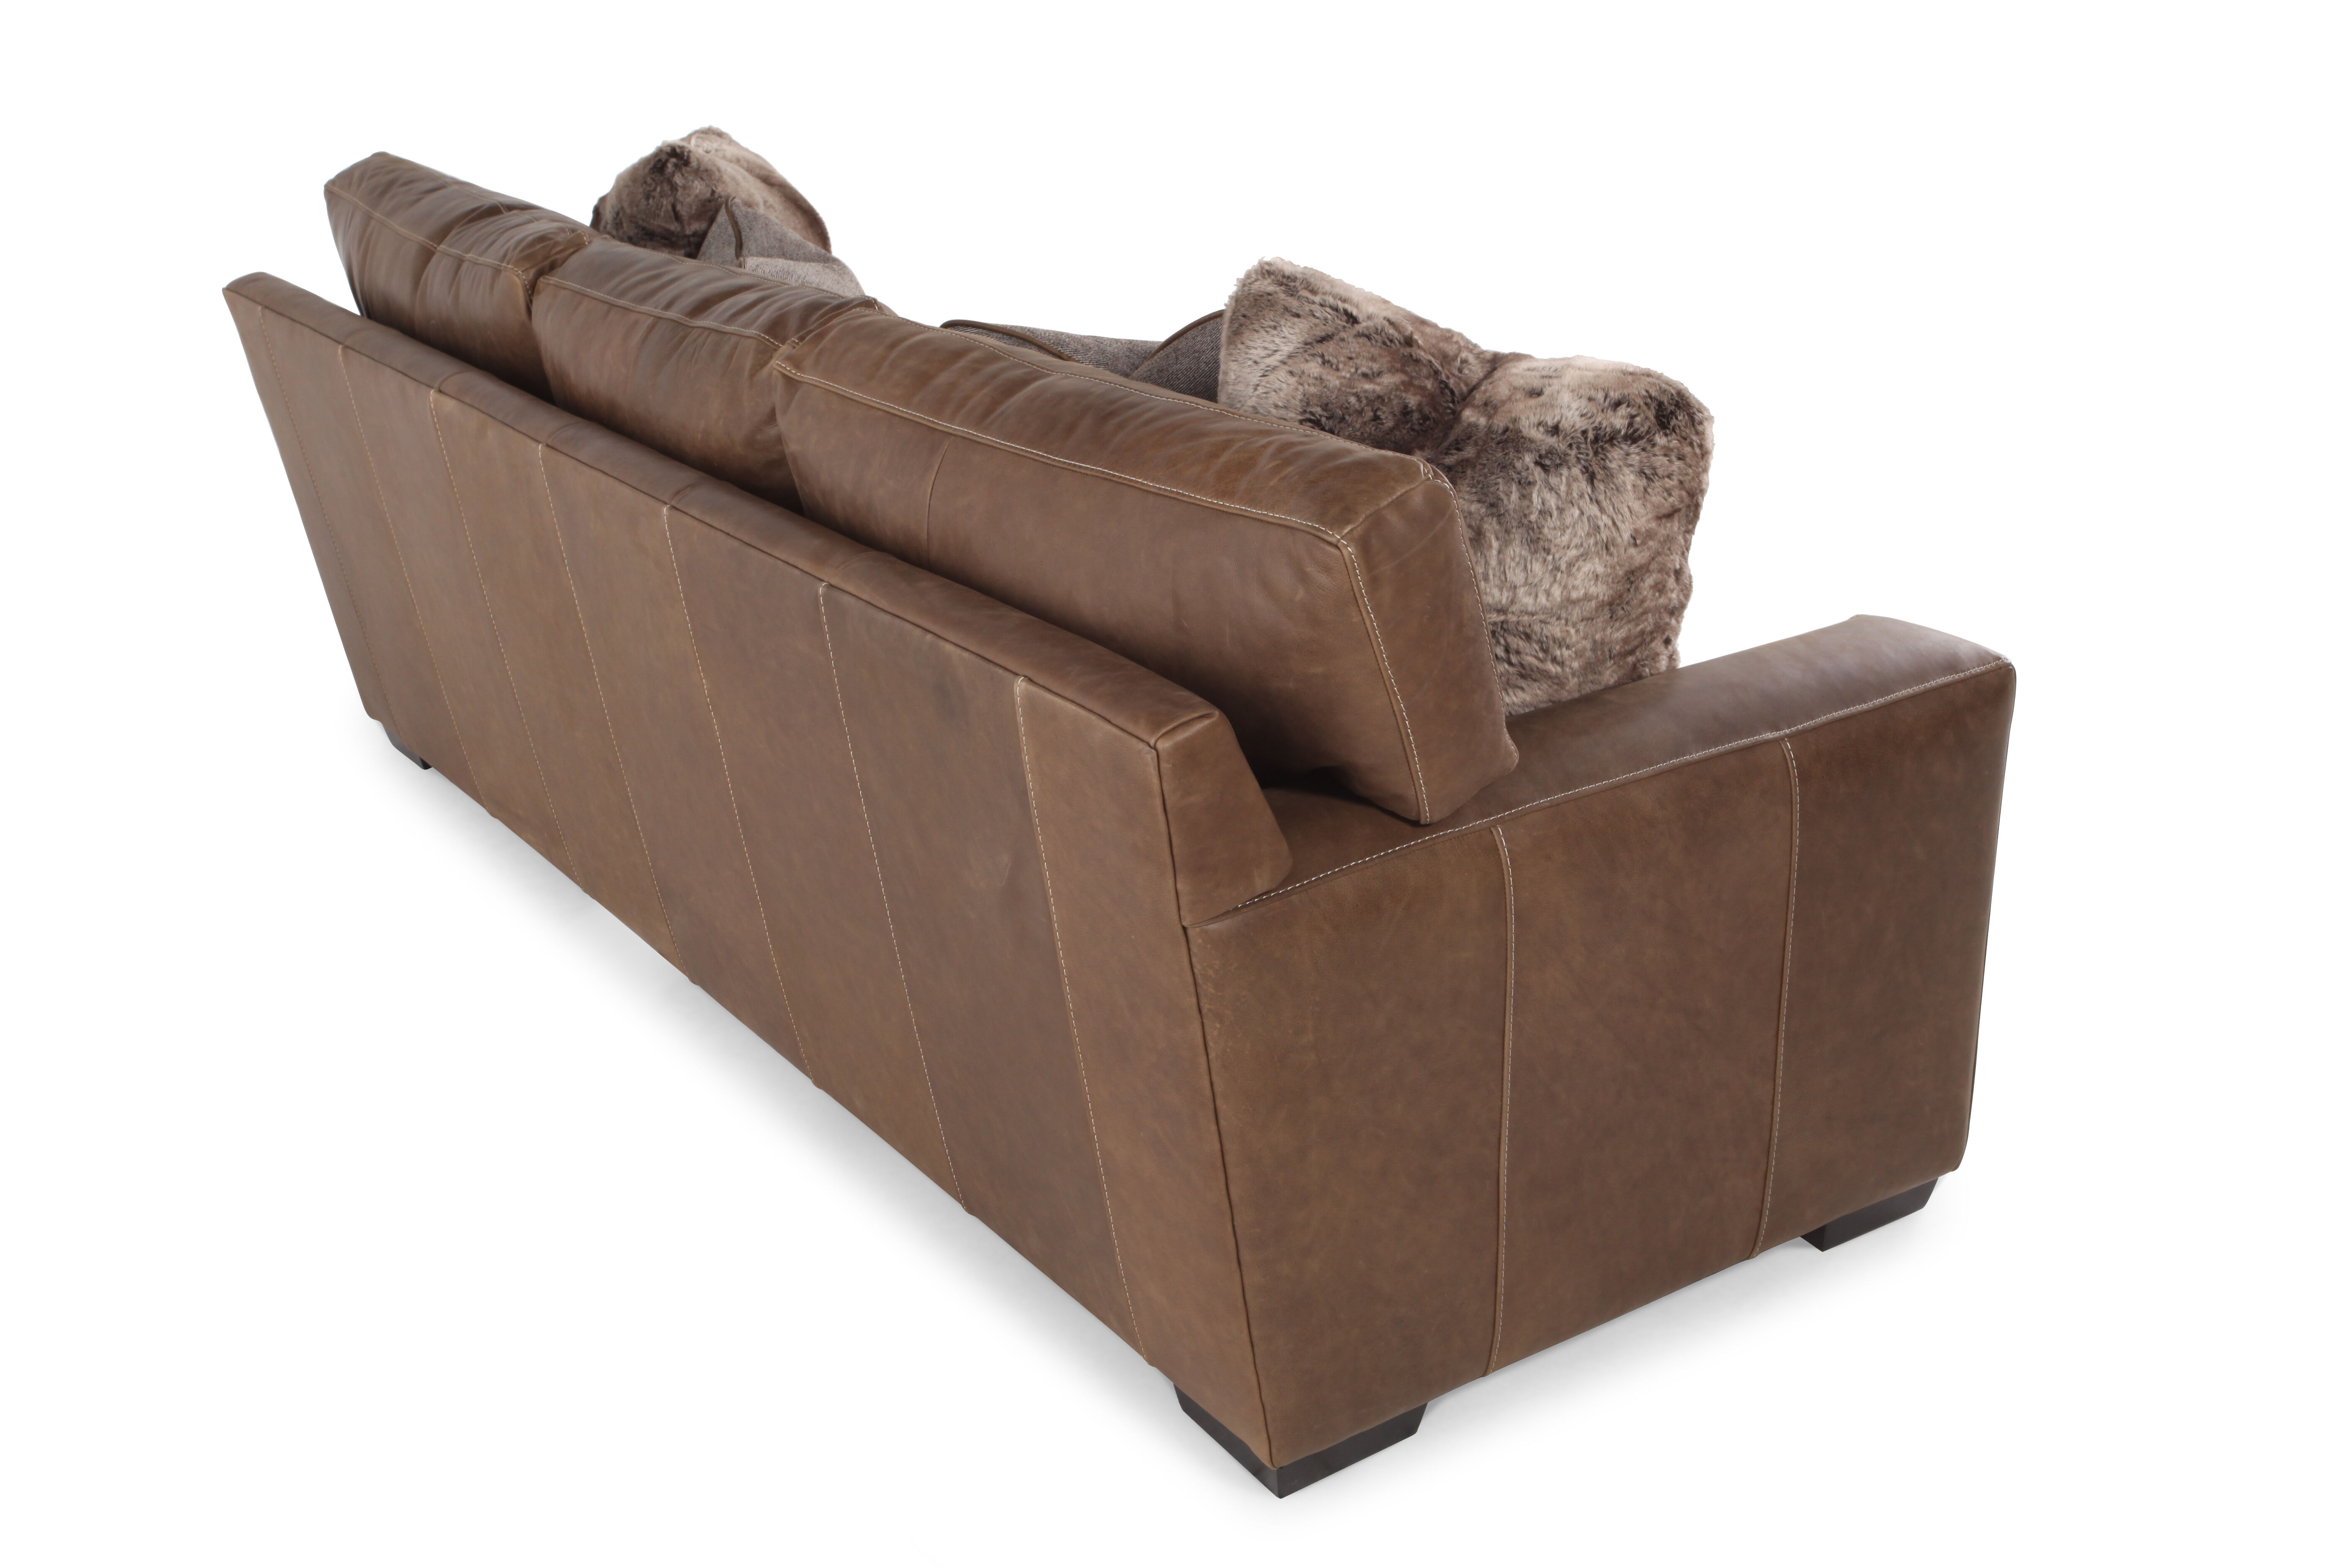 low profile leather sectional sofa custom cushions vancouver 98 quot in saddle brown mathis